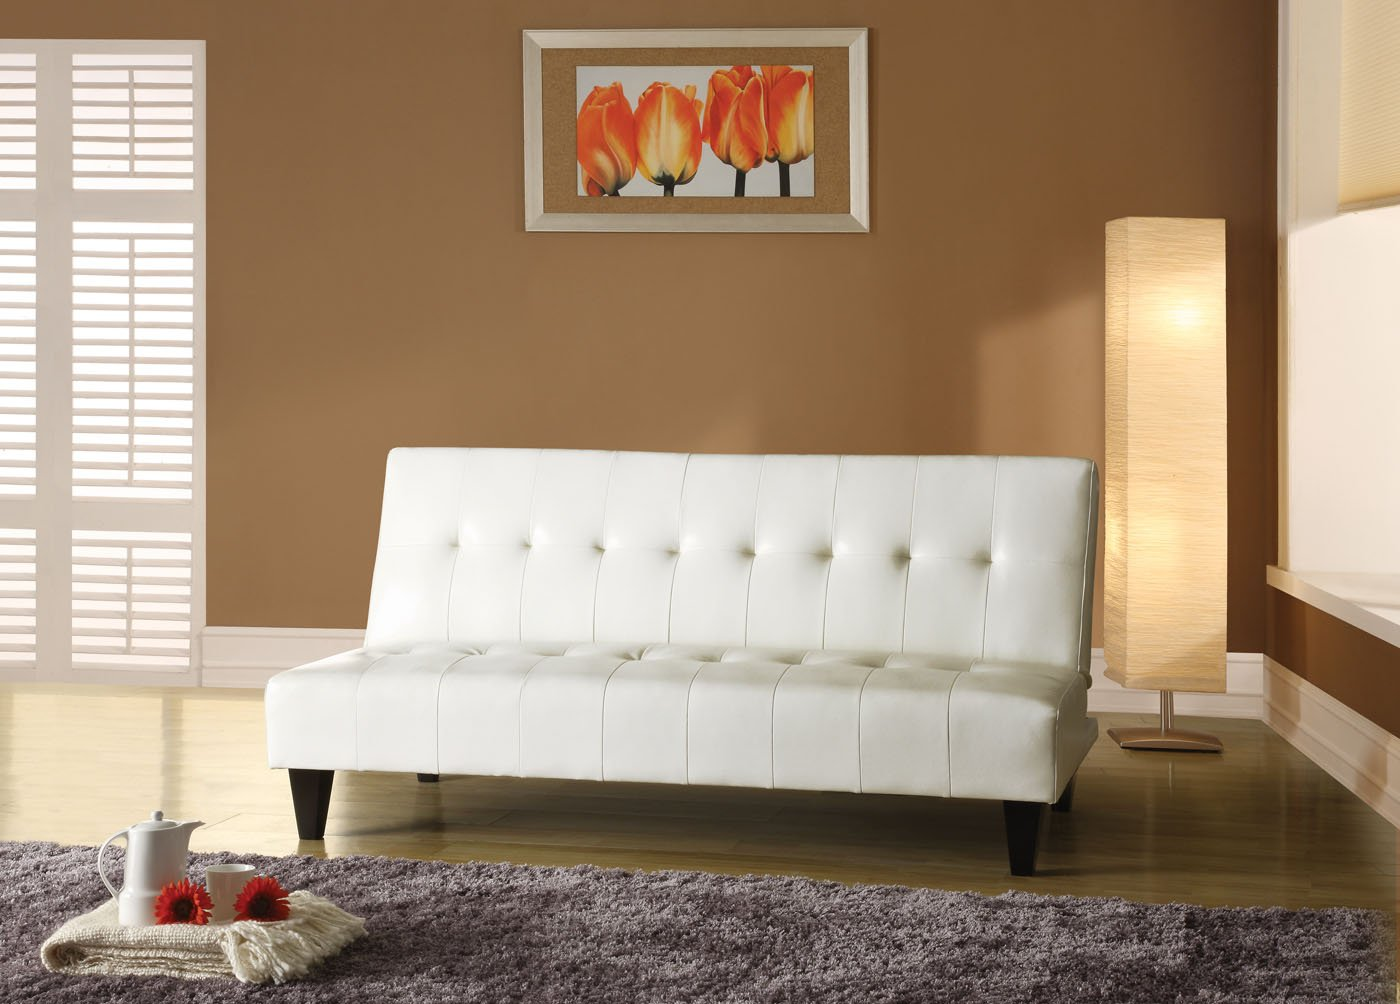 Amazon.com: Acme 05858C Conrad Adjustable Sofa, White Polyurethane Finish:  Kitchen U0026 Dining